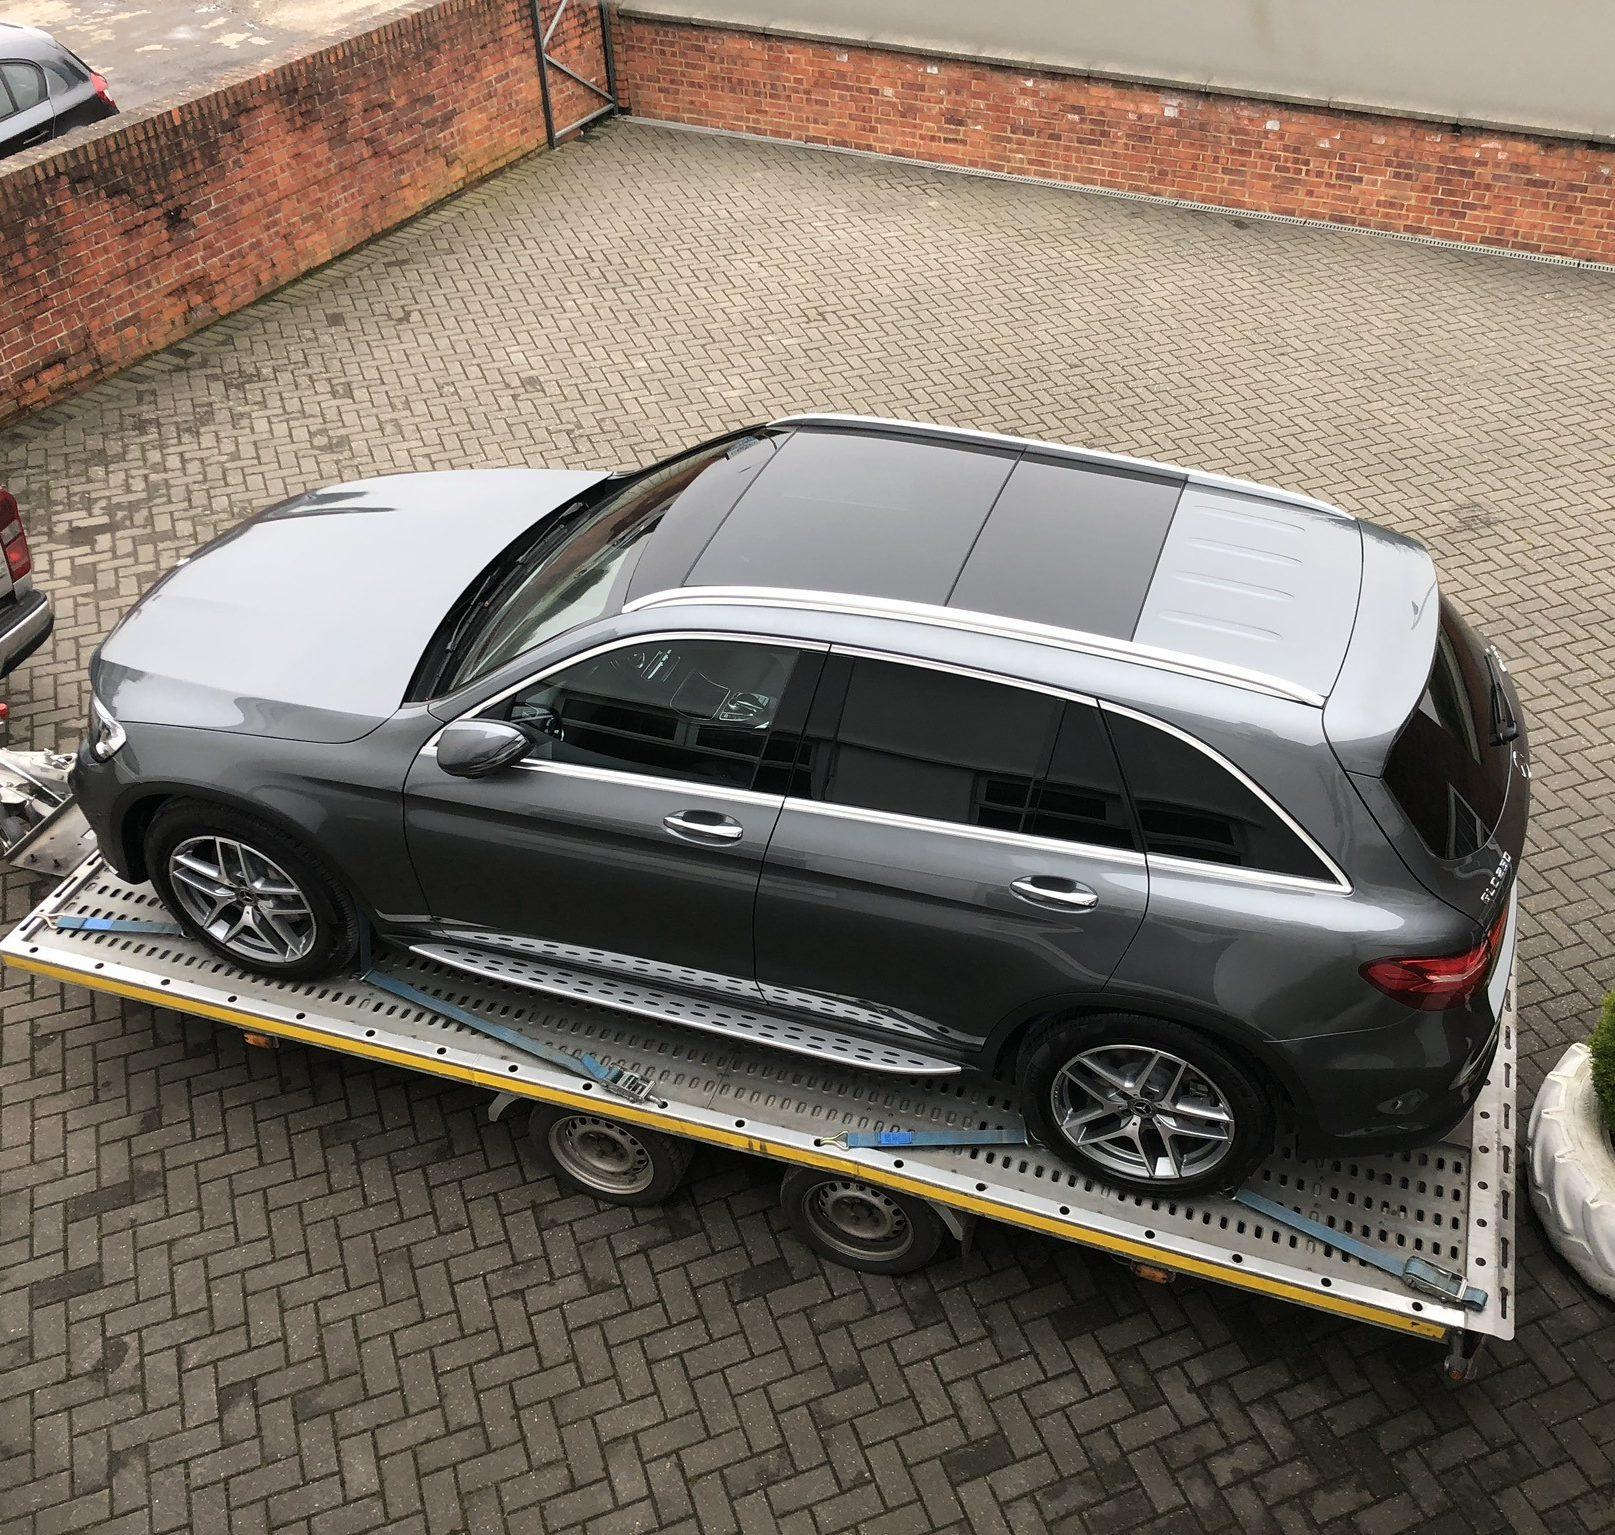 Vehicle Delivery of a new BMW X5 from Halliwell Jones Warrington